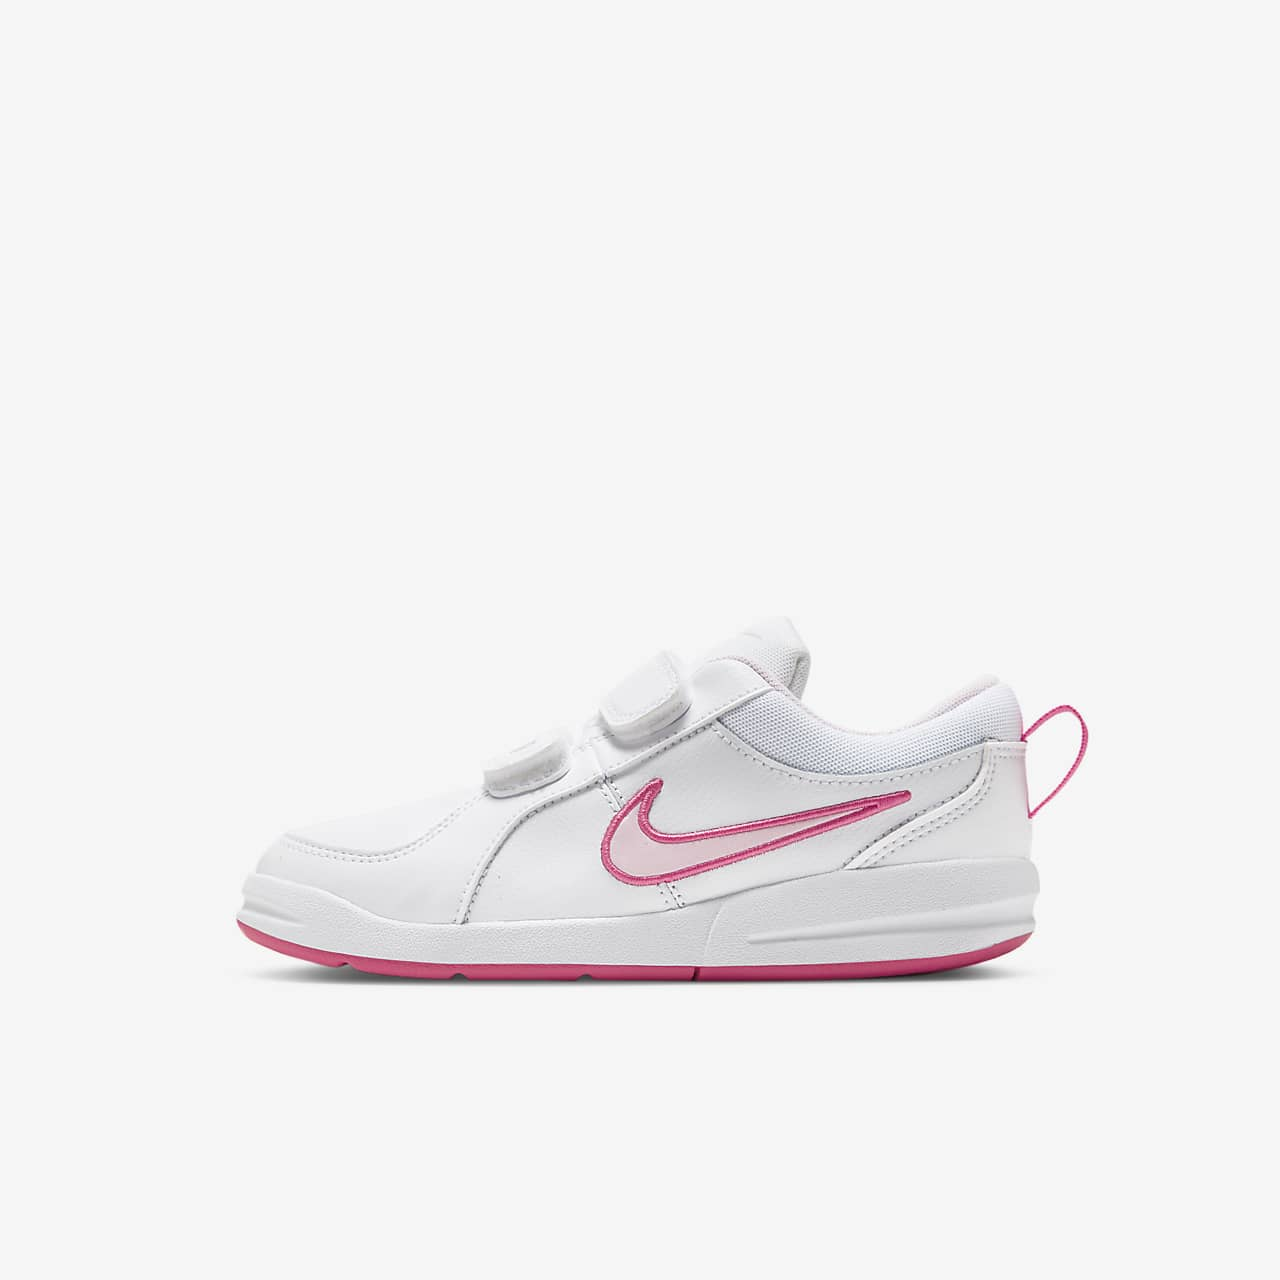 taille 40 5d7ad 9821e Nike Pico 4 — Chaussure pour Petite fille